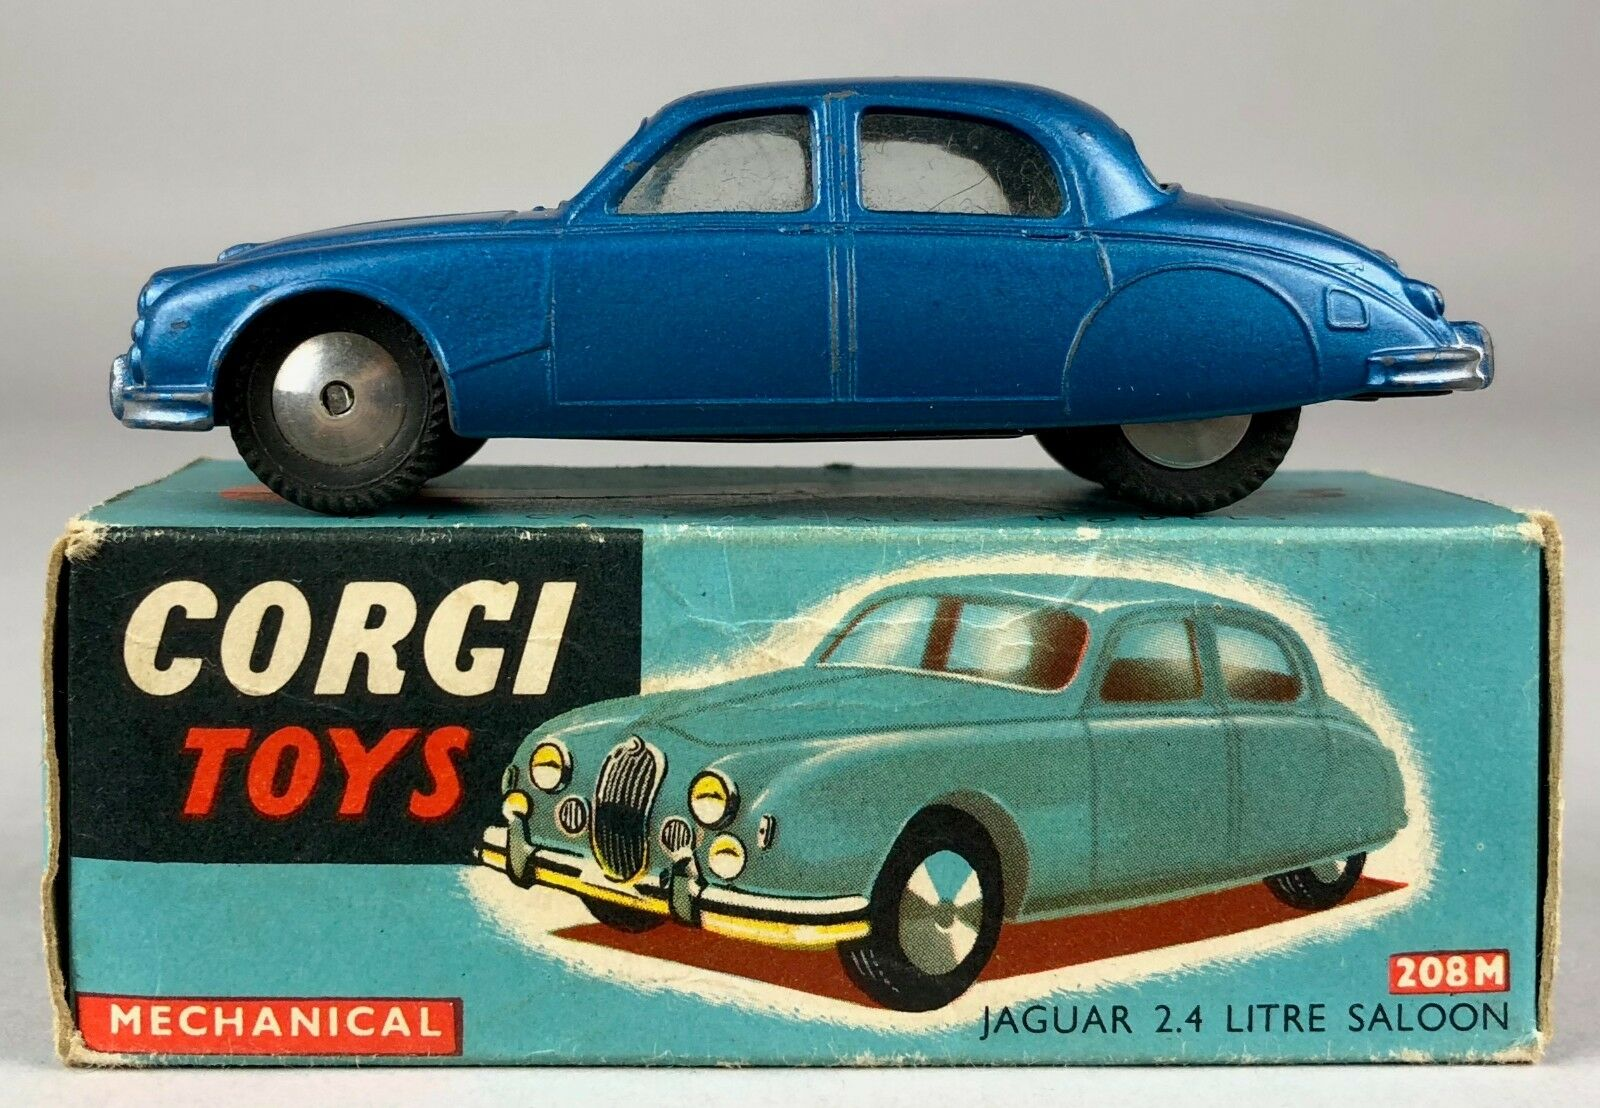 CORGI TOYS -JAGUAR 2.4 LITRE SALOON No. 208M- VINTAGE MECHANICAL MODEL CAR BOXED